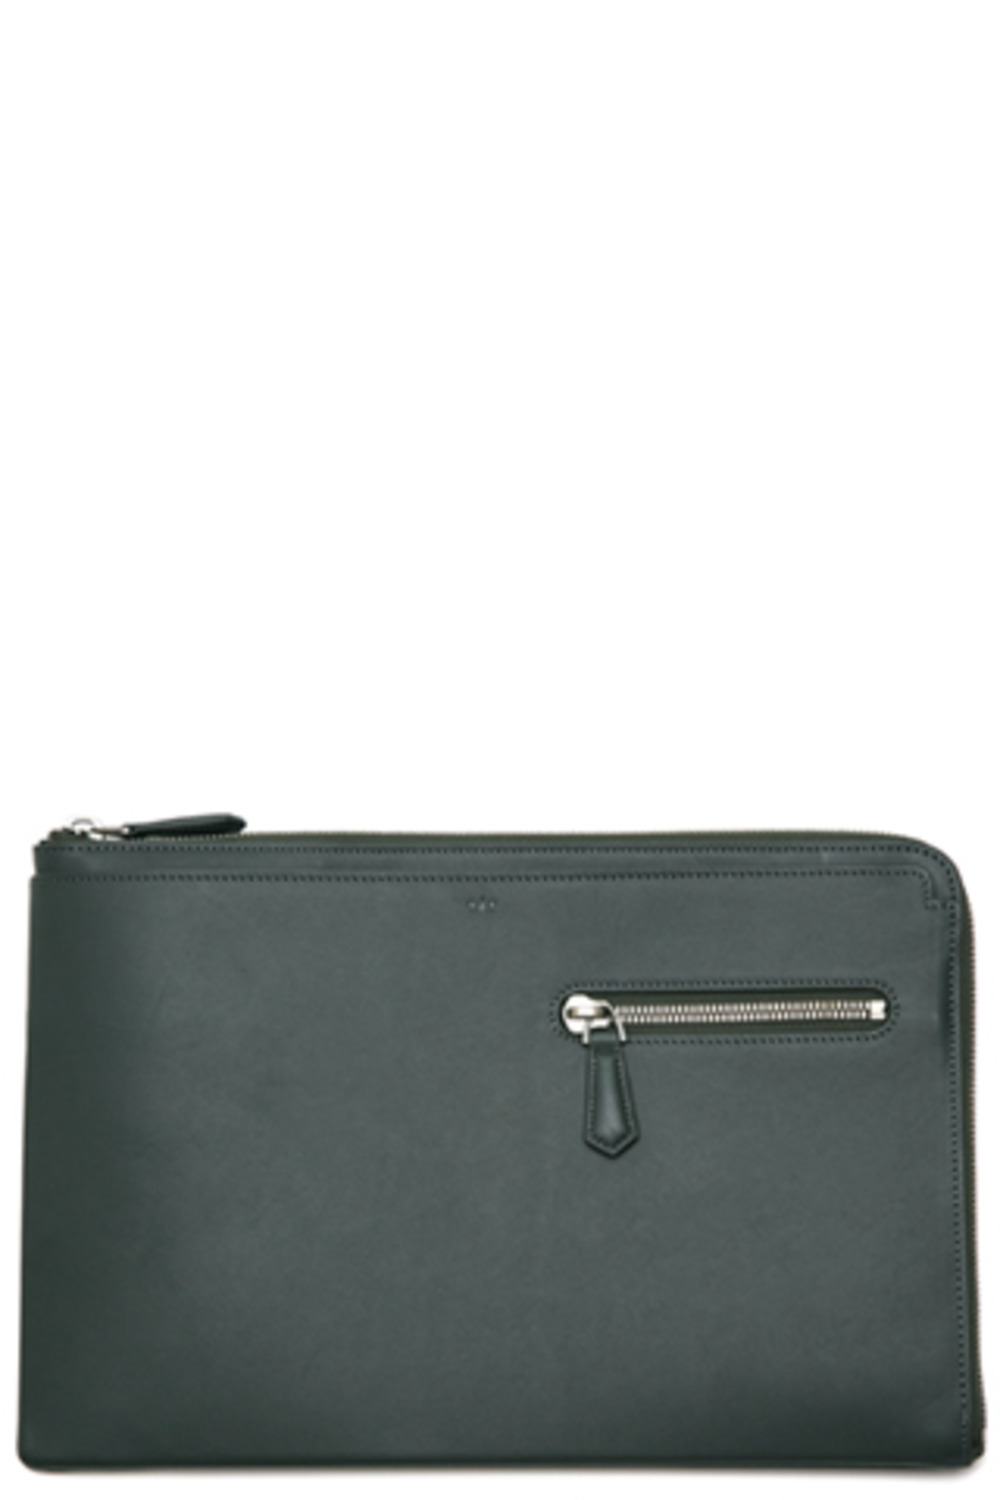 DarkGreen Zipper Clutch